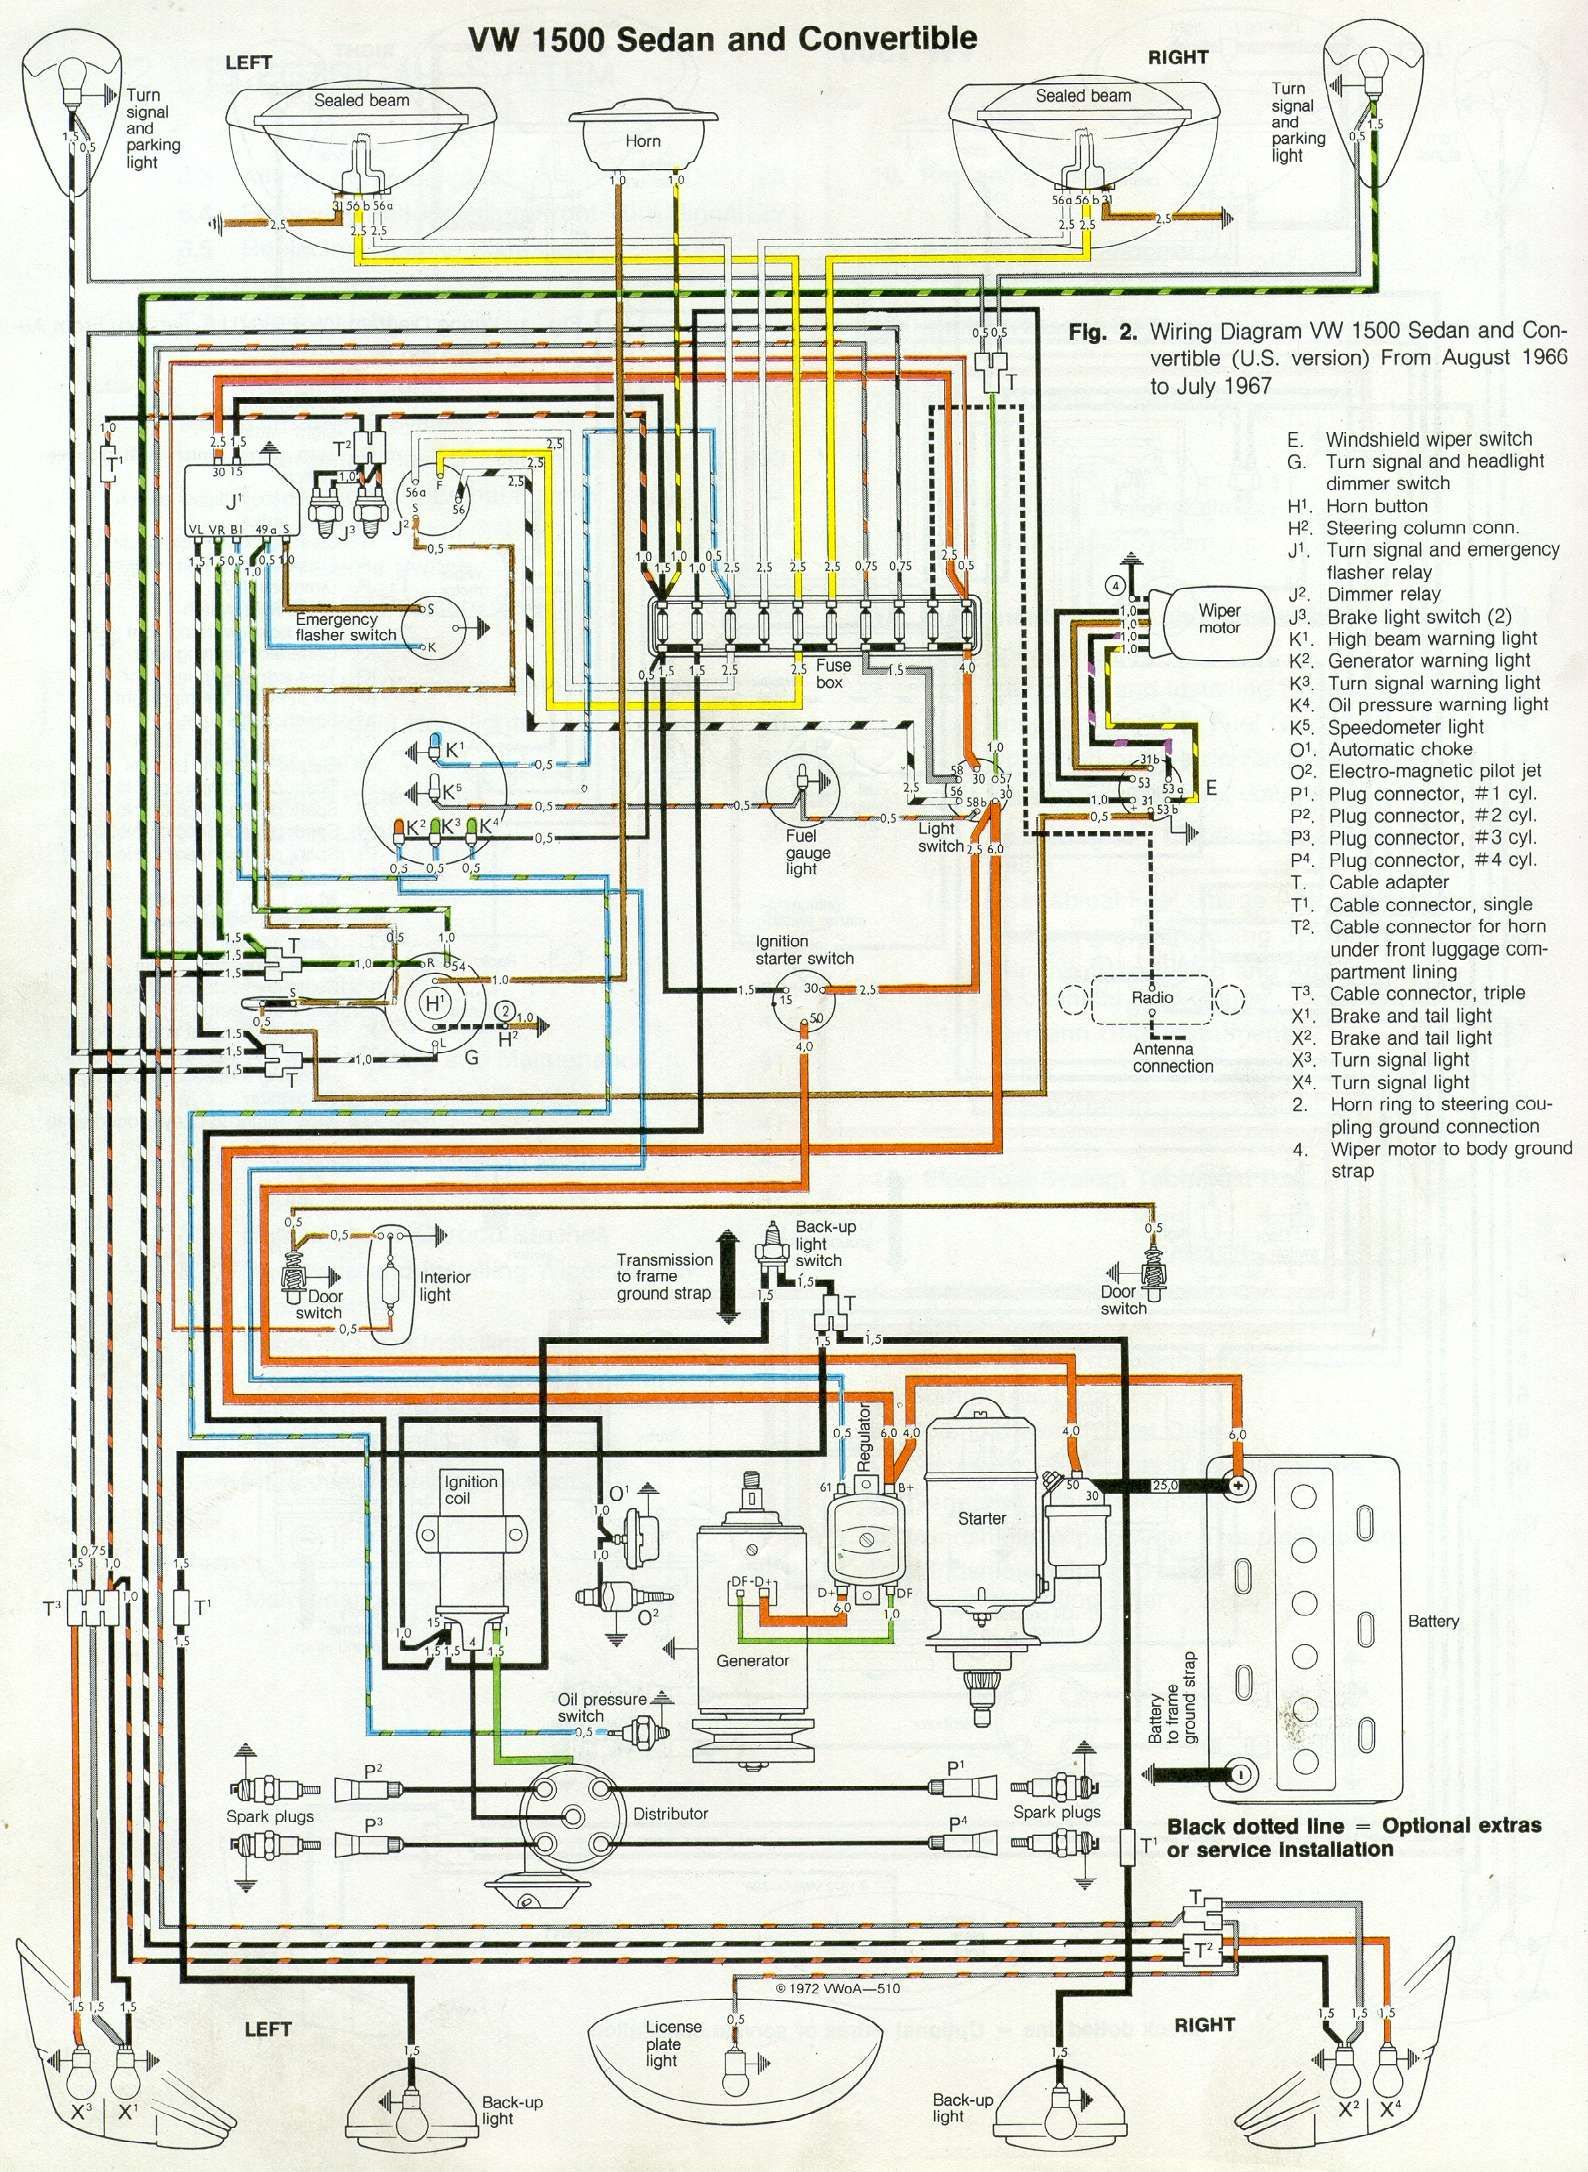 small resolution of 1969 vw beetle wiring diagram wiring diagram experts1969 vw wiring diagram wiring diagram experts 1969 vw